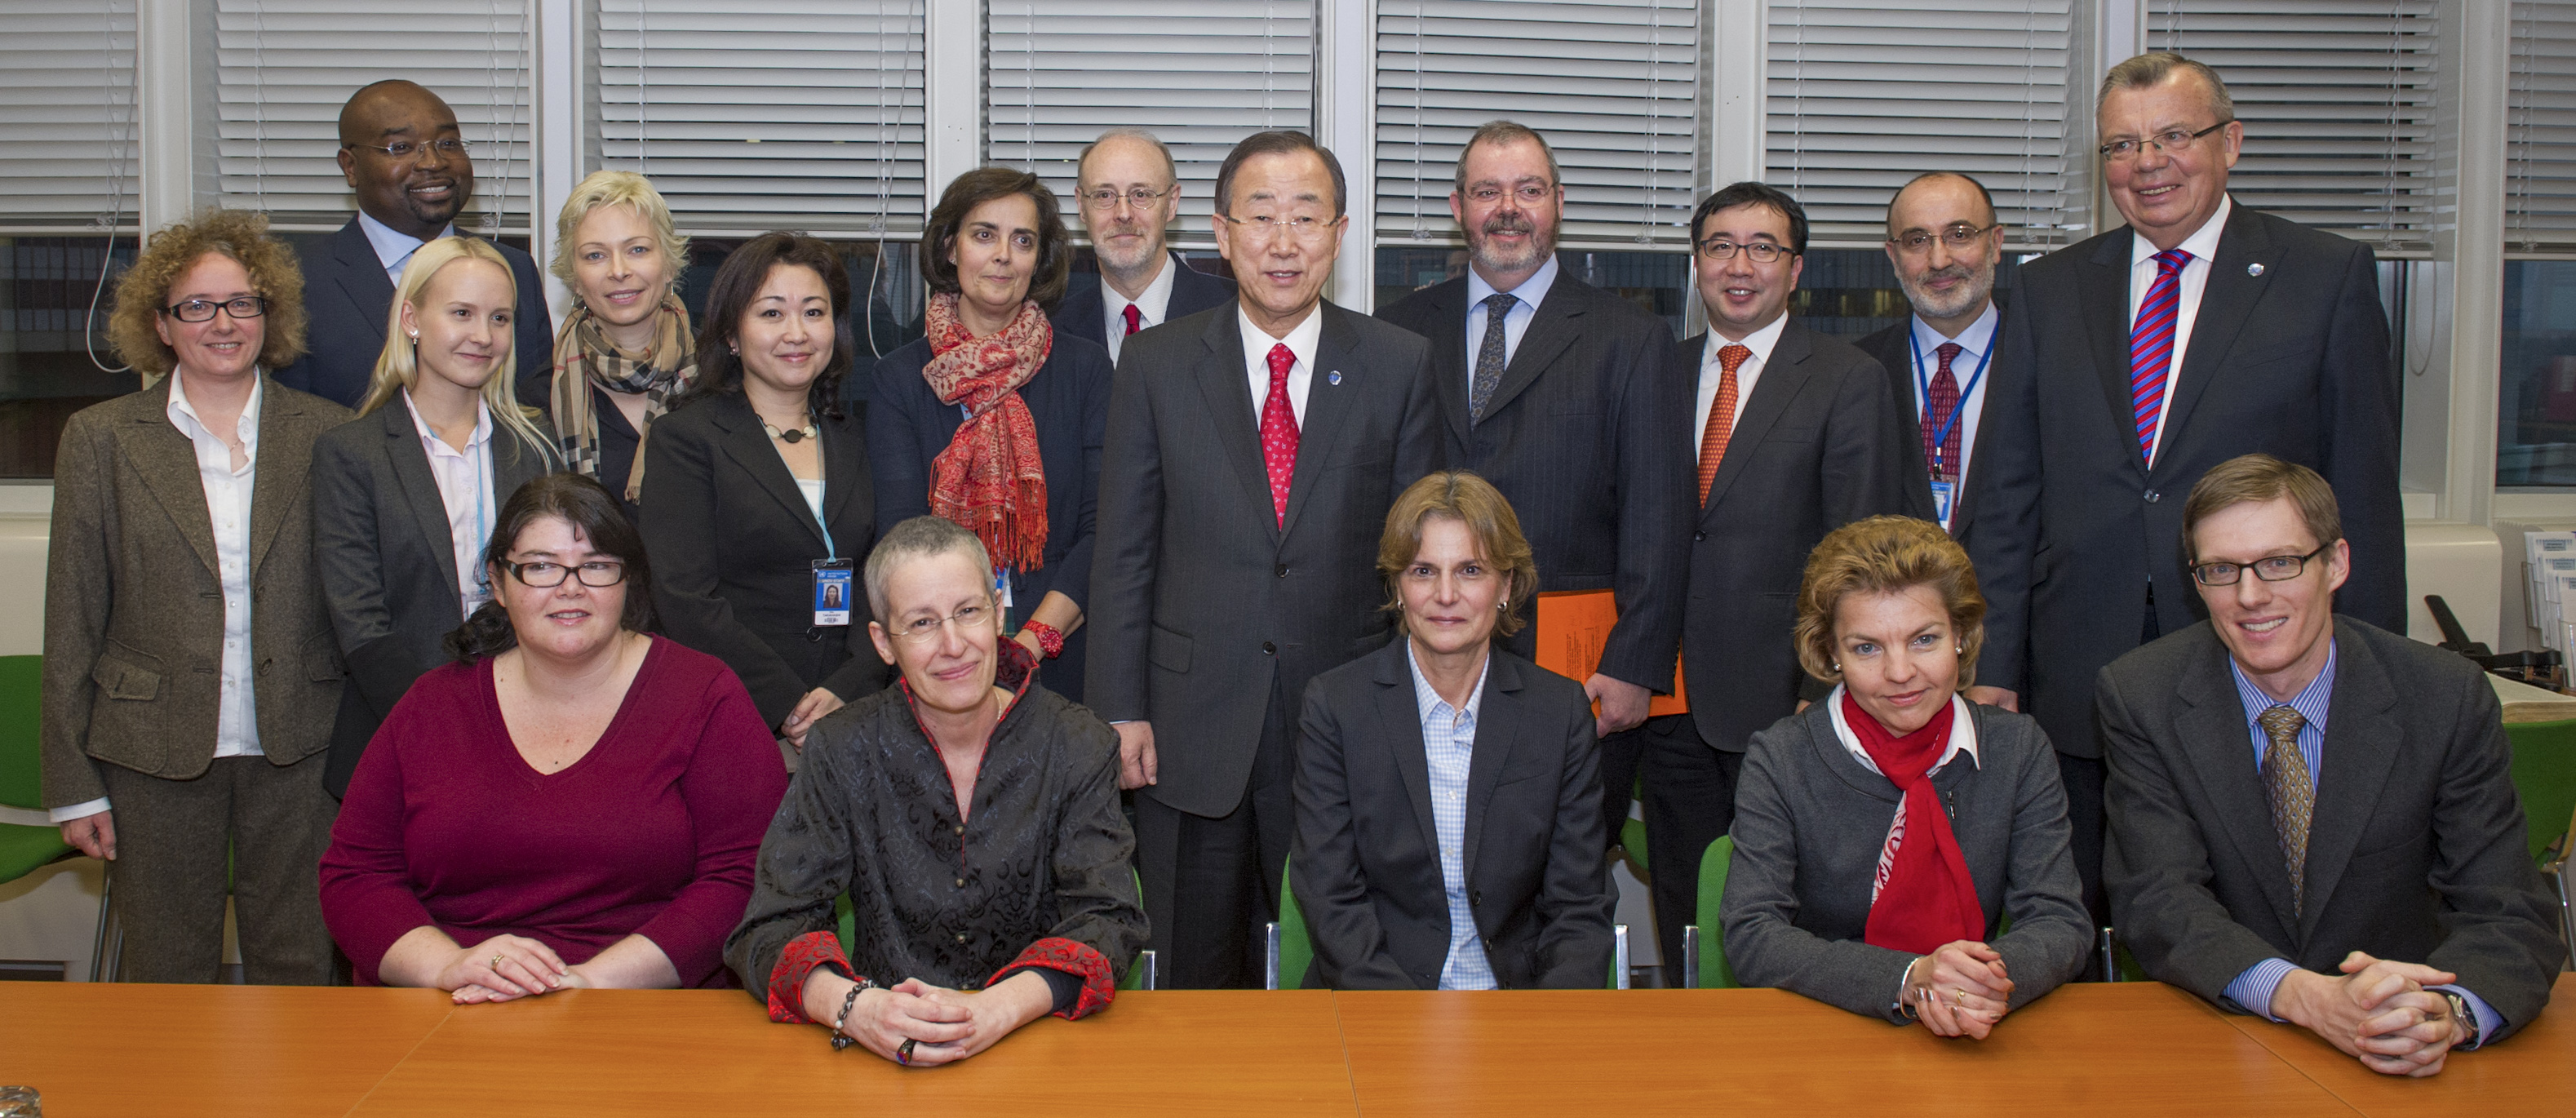 Secretary-General Ban Ki-moon (centre, in red tie) and Yury Fedotov (back row, right), Executive Director of the UN Office on Drugs and Crime (UNODC), pose for a group photo with the Secretariat of the UN Commission on International Trade Law (UNCITRAL) at its offices in Vienna Austria.